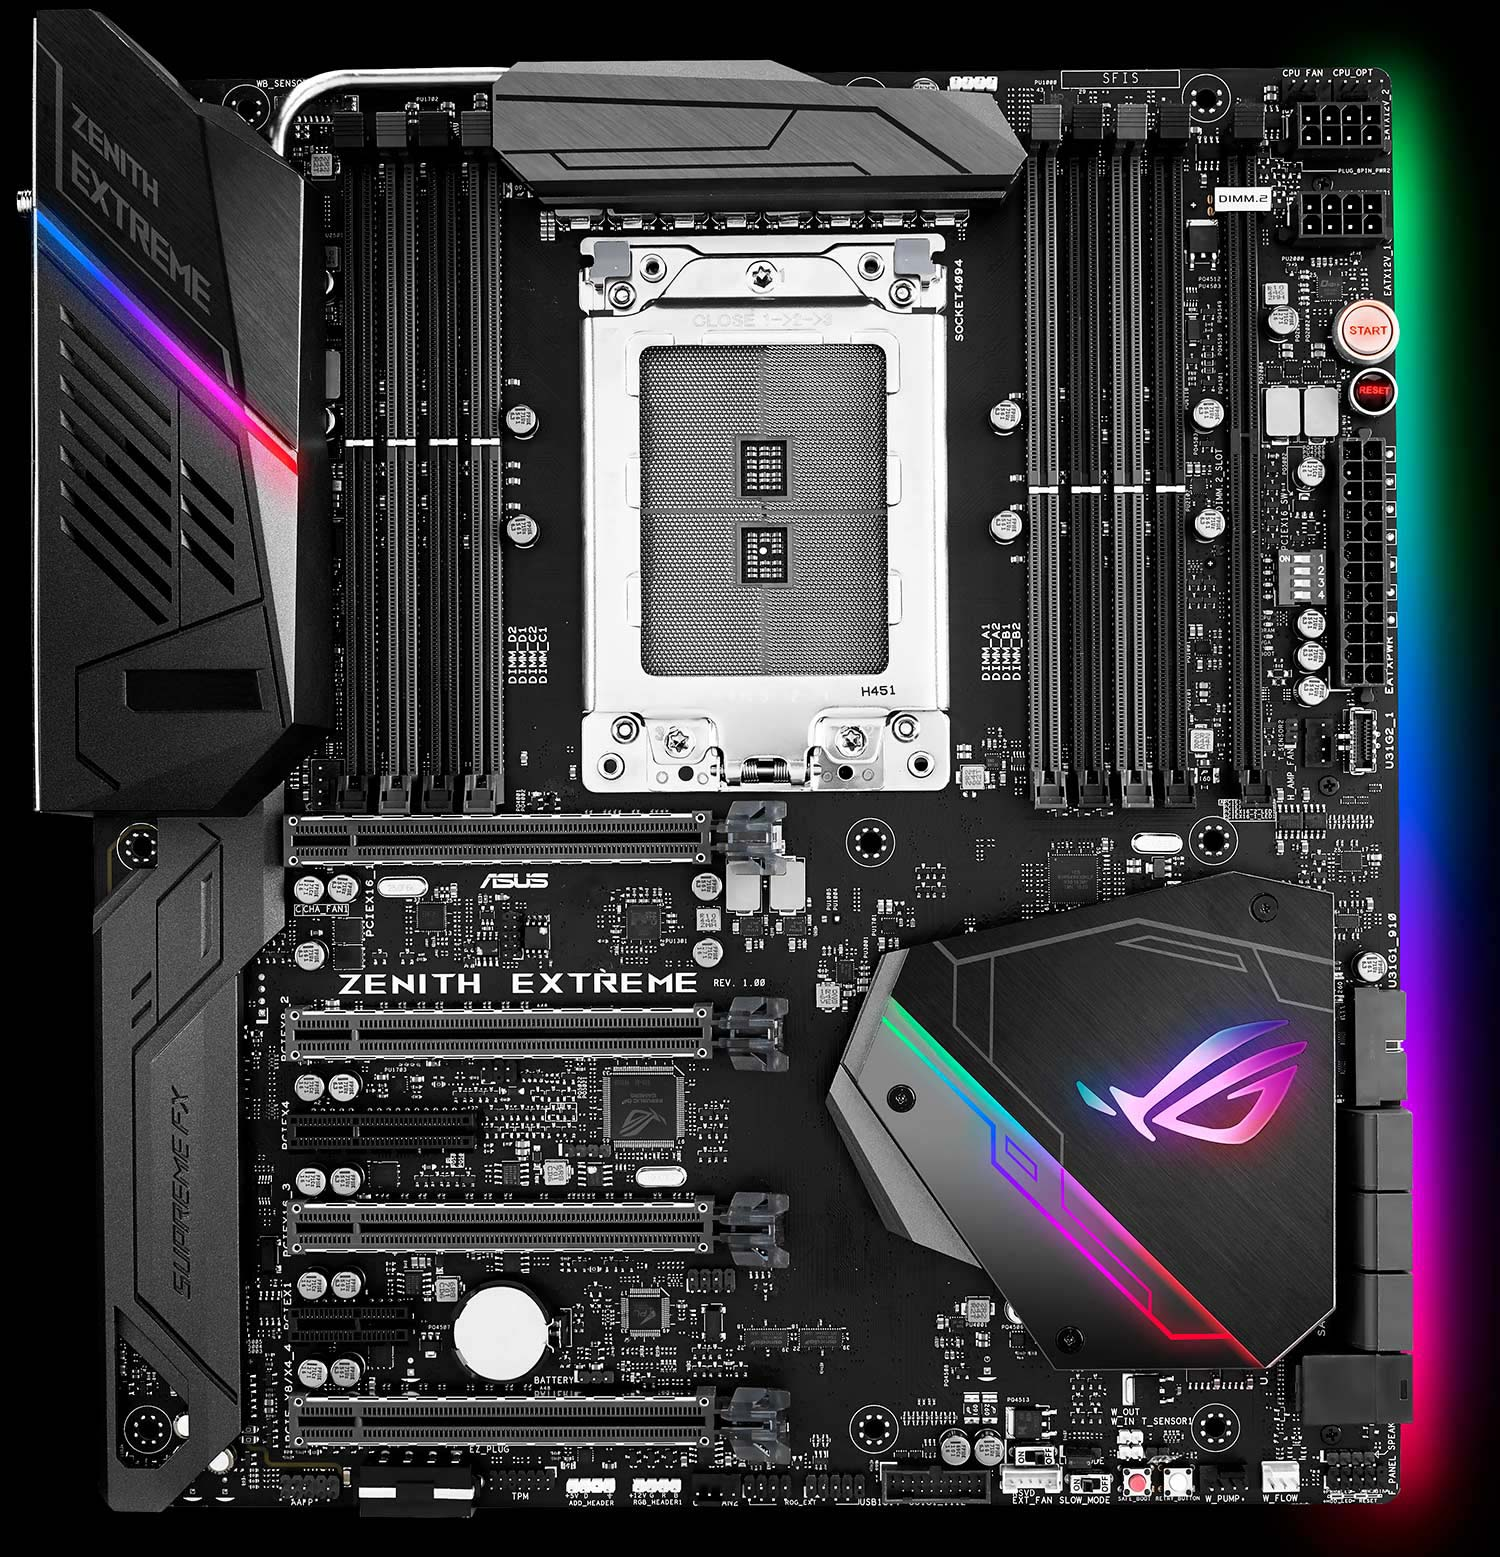 ROG's Zenith Extreme motherboard is coming for AMD's monster